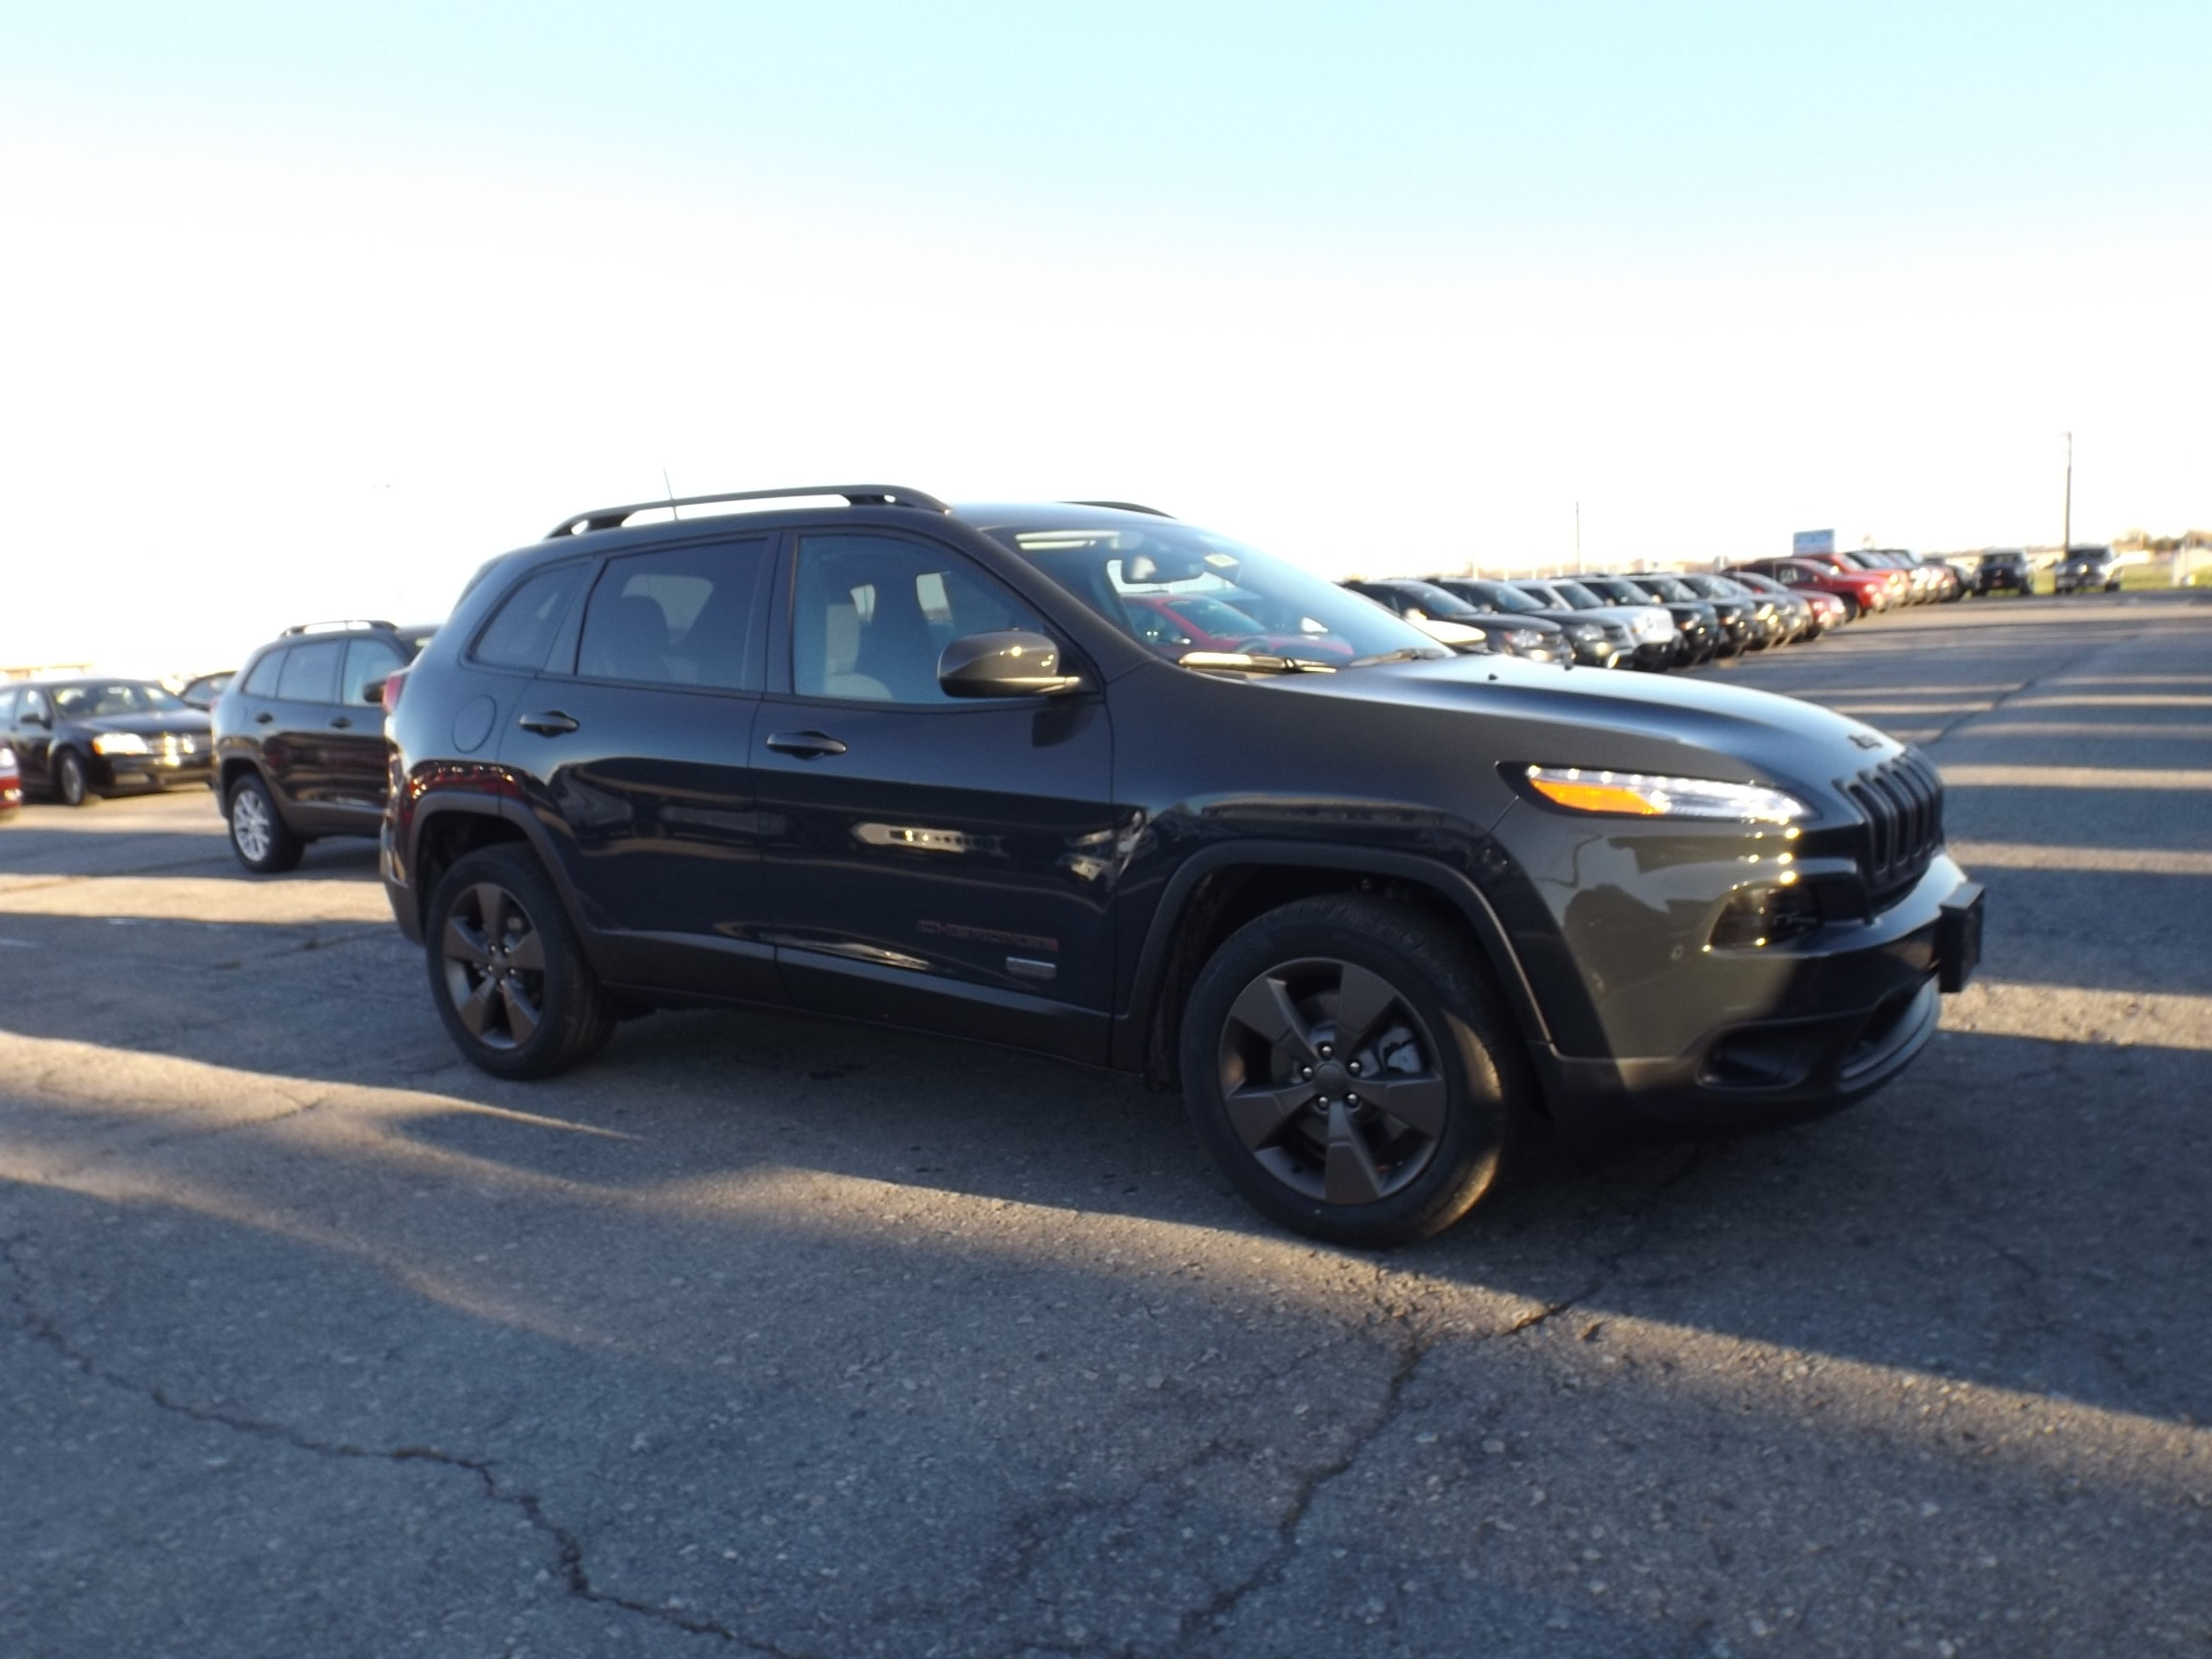 2017 Jeep Cherokee Latitude USave Rental Car SUV